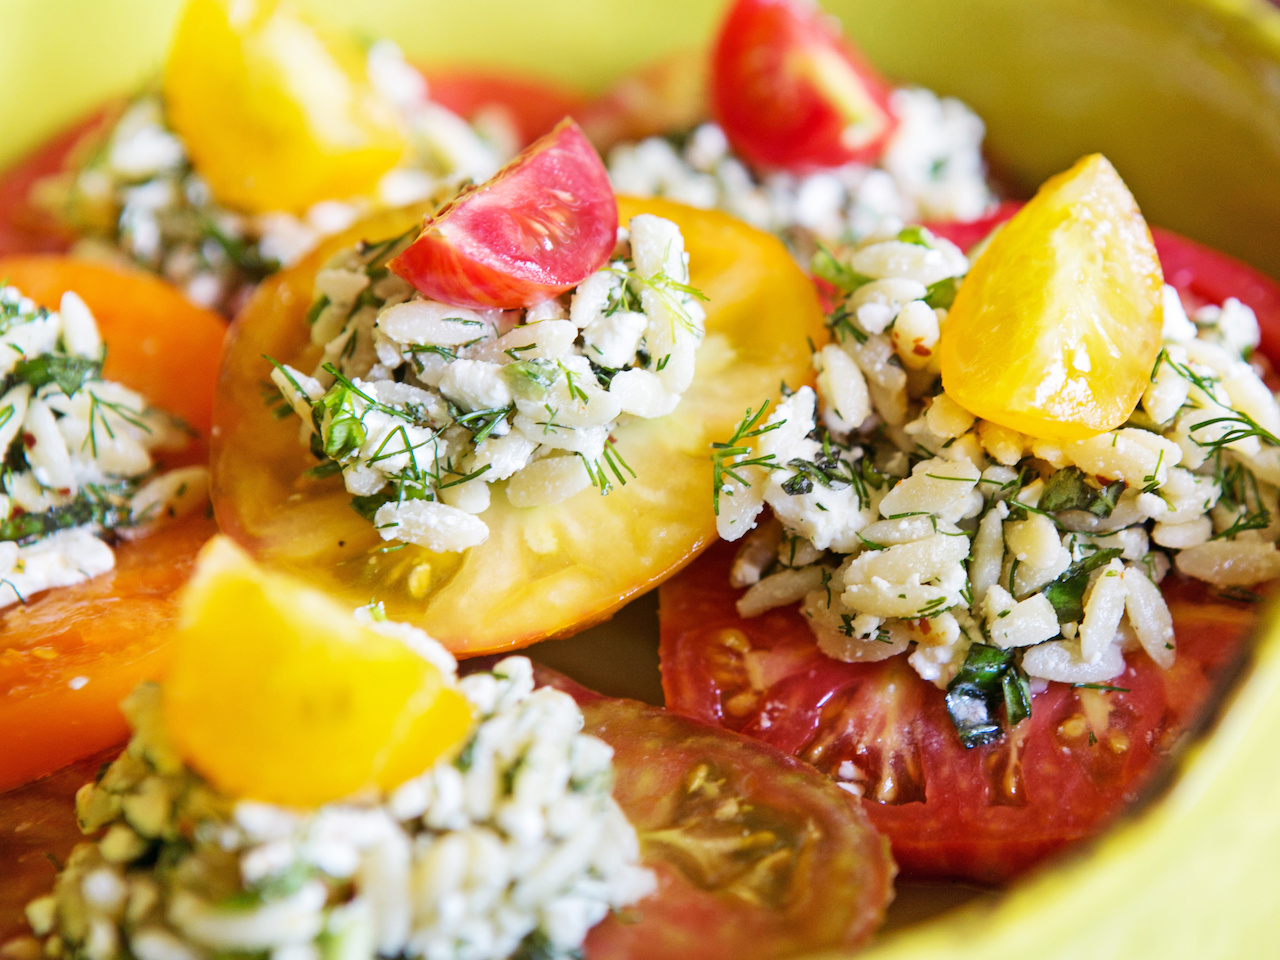 Finish each orzo salad-topped tomato with an alternating colored cherry tomato for a truly eye-catching dish!